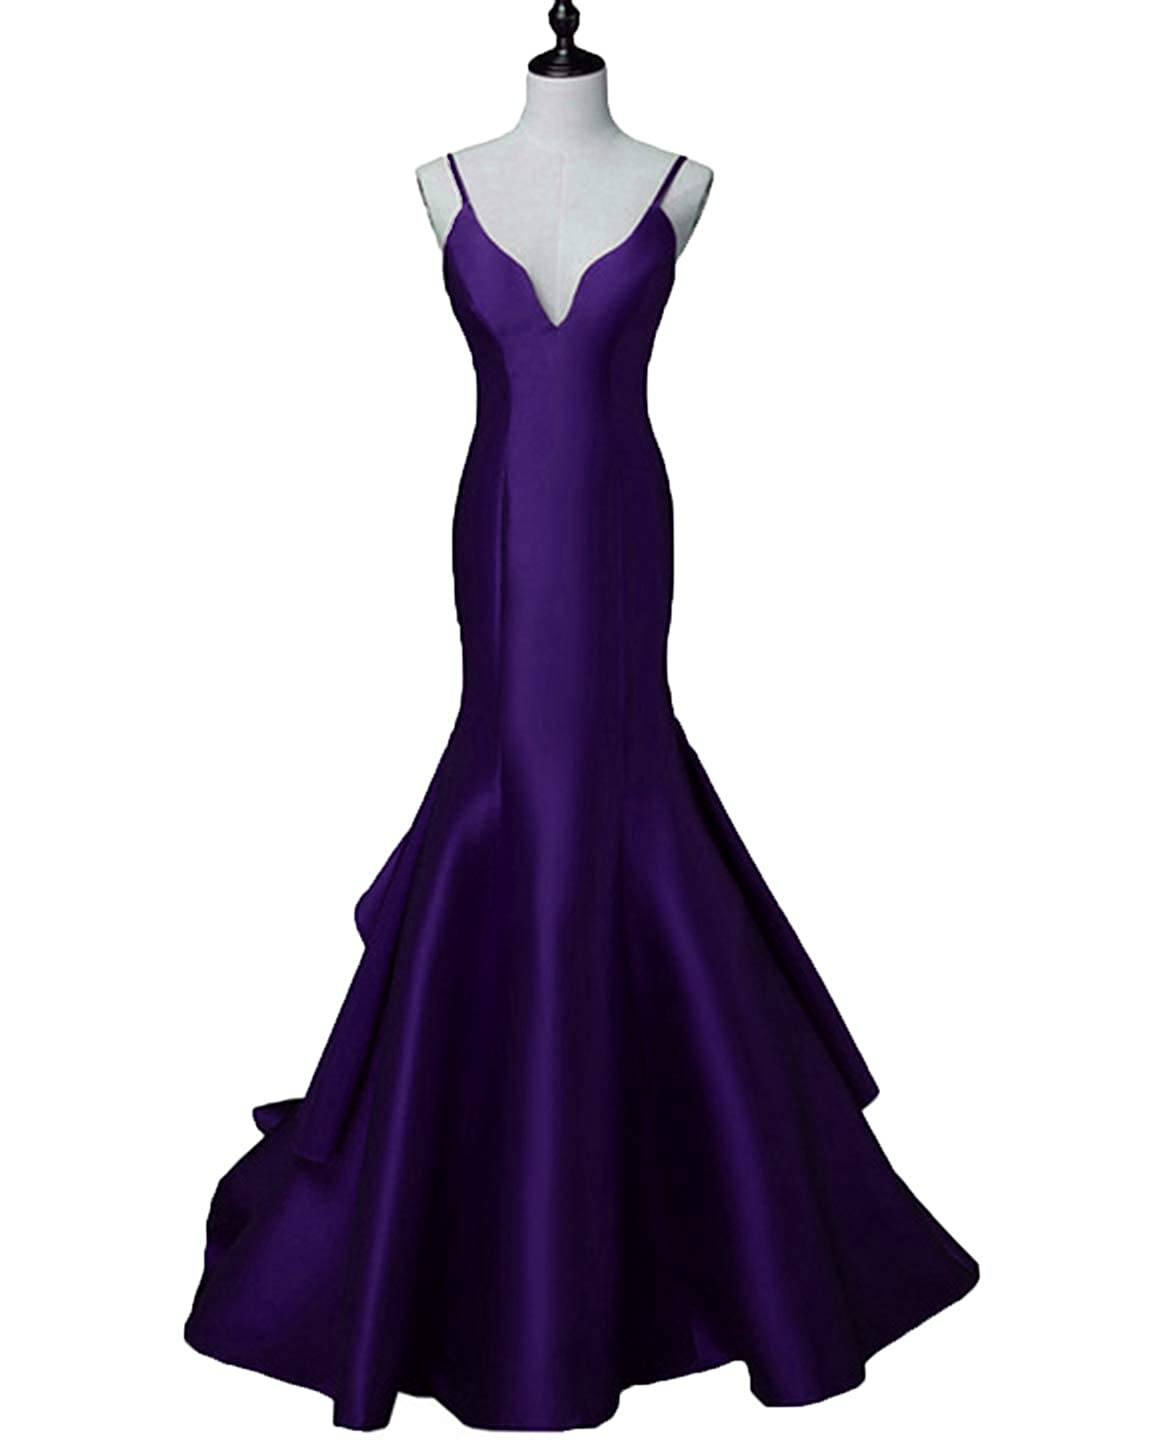 Purplestraps Scarisee Women's Sweetheart Mermaid Prom Evening Party Dresses Tiered FormalSA51